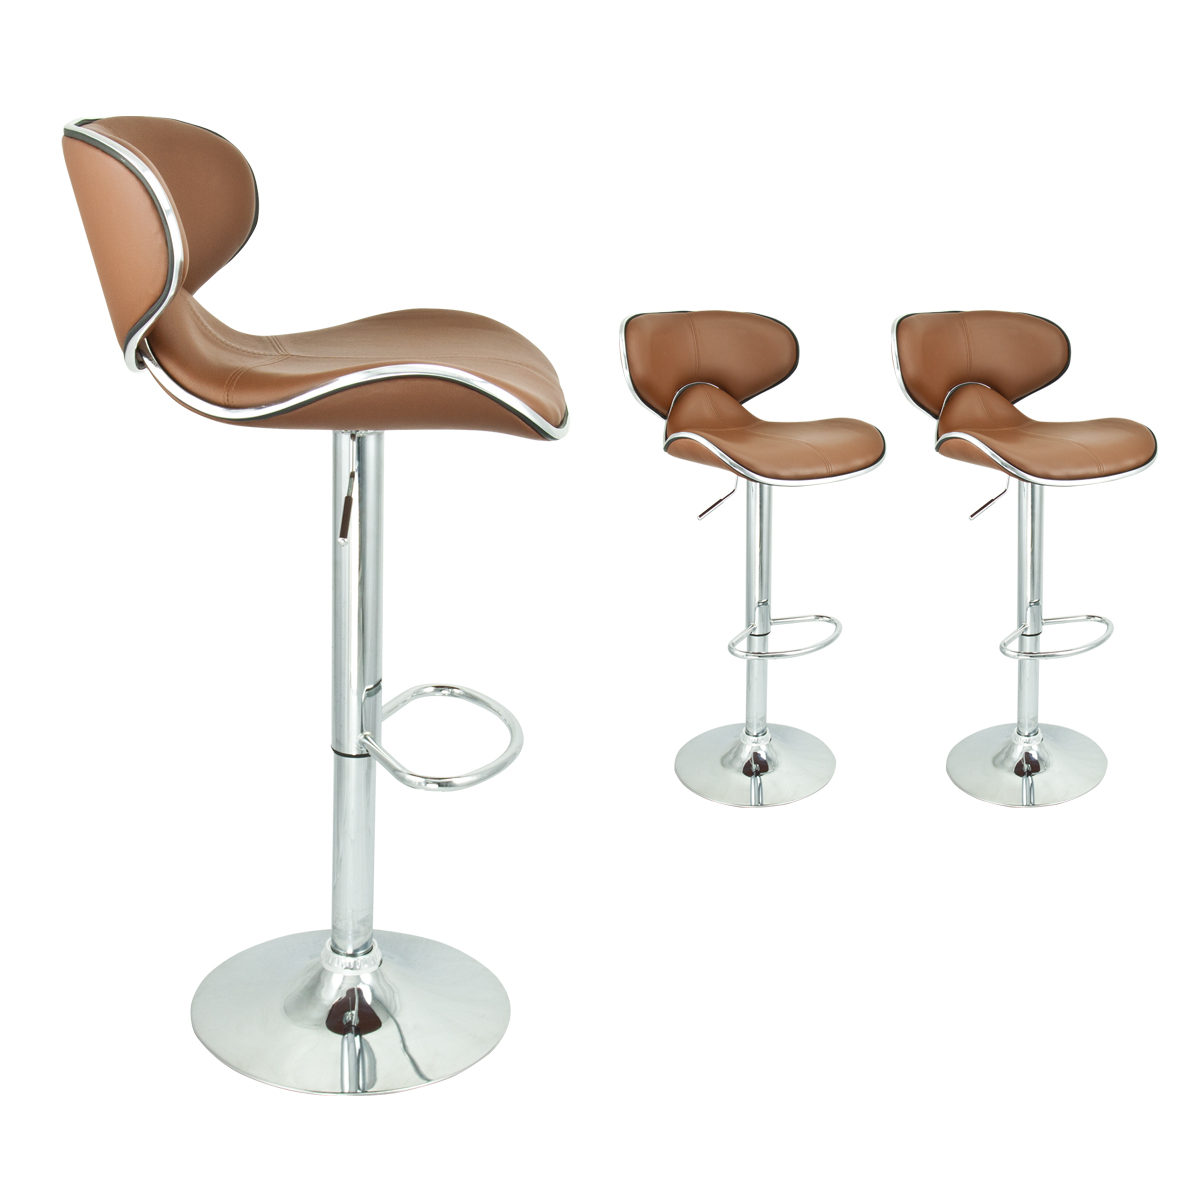 2 Mocha Modern Adjustable Barstool Swivel Elegant Pu